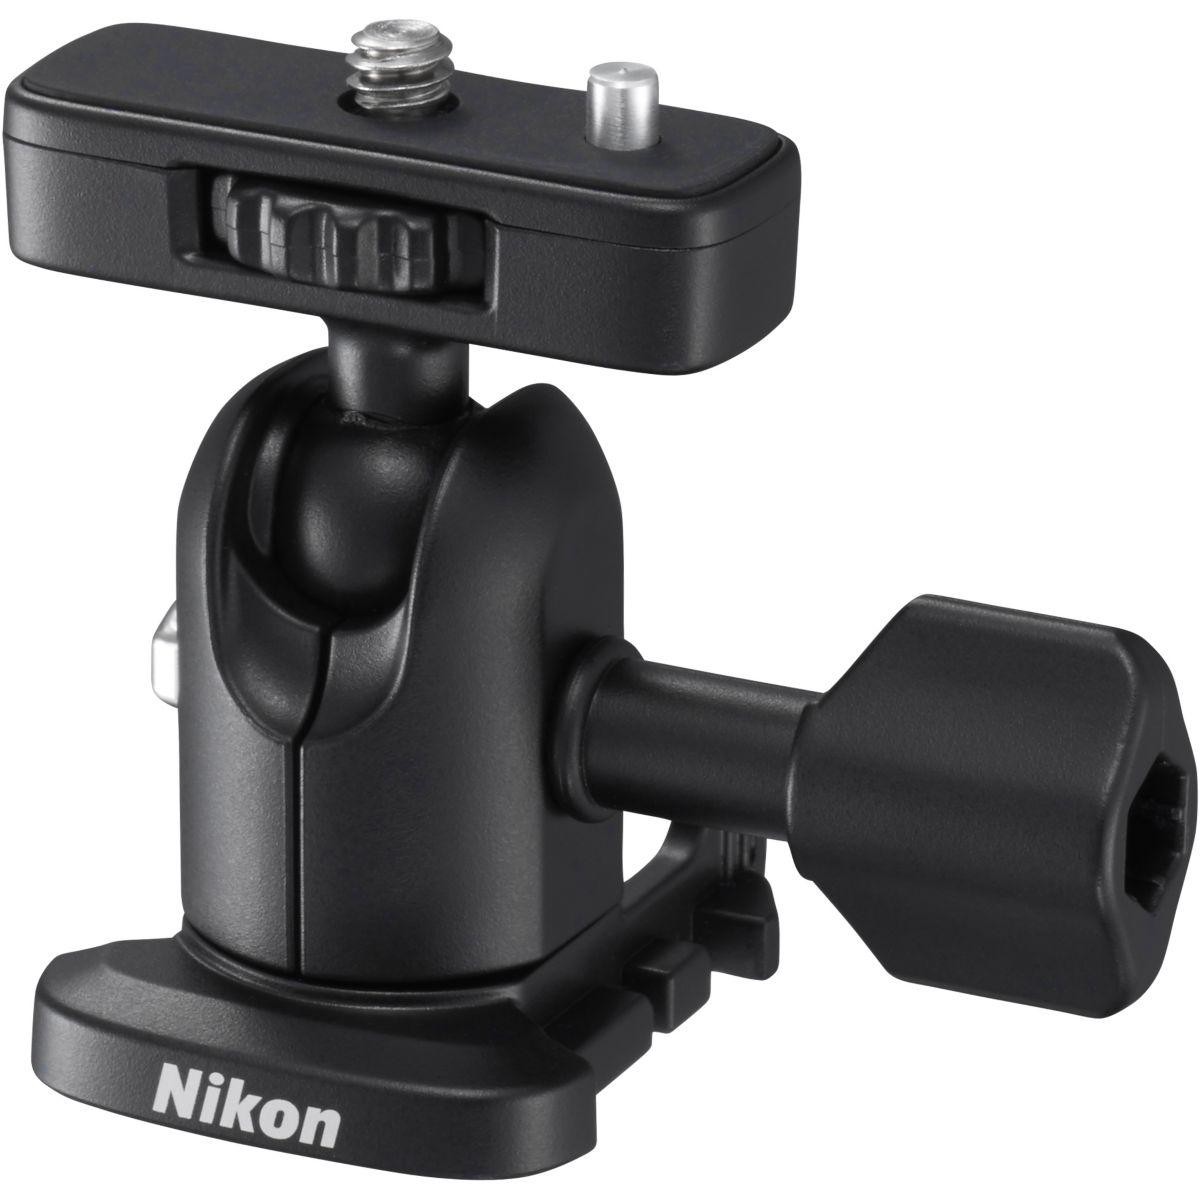 Adaptateur nikon rotule ball keymission (photo)